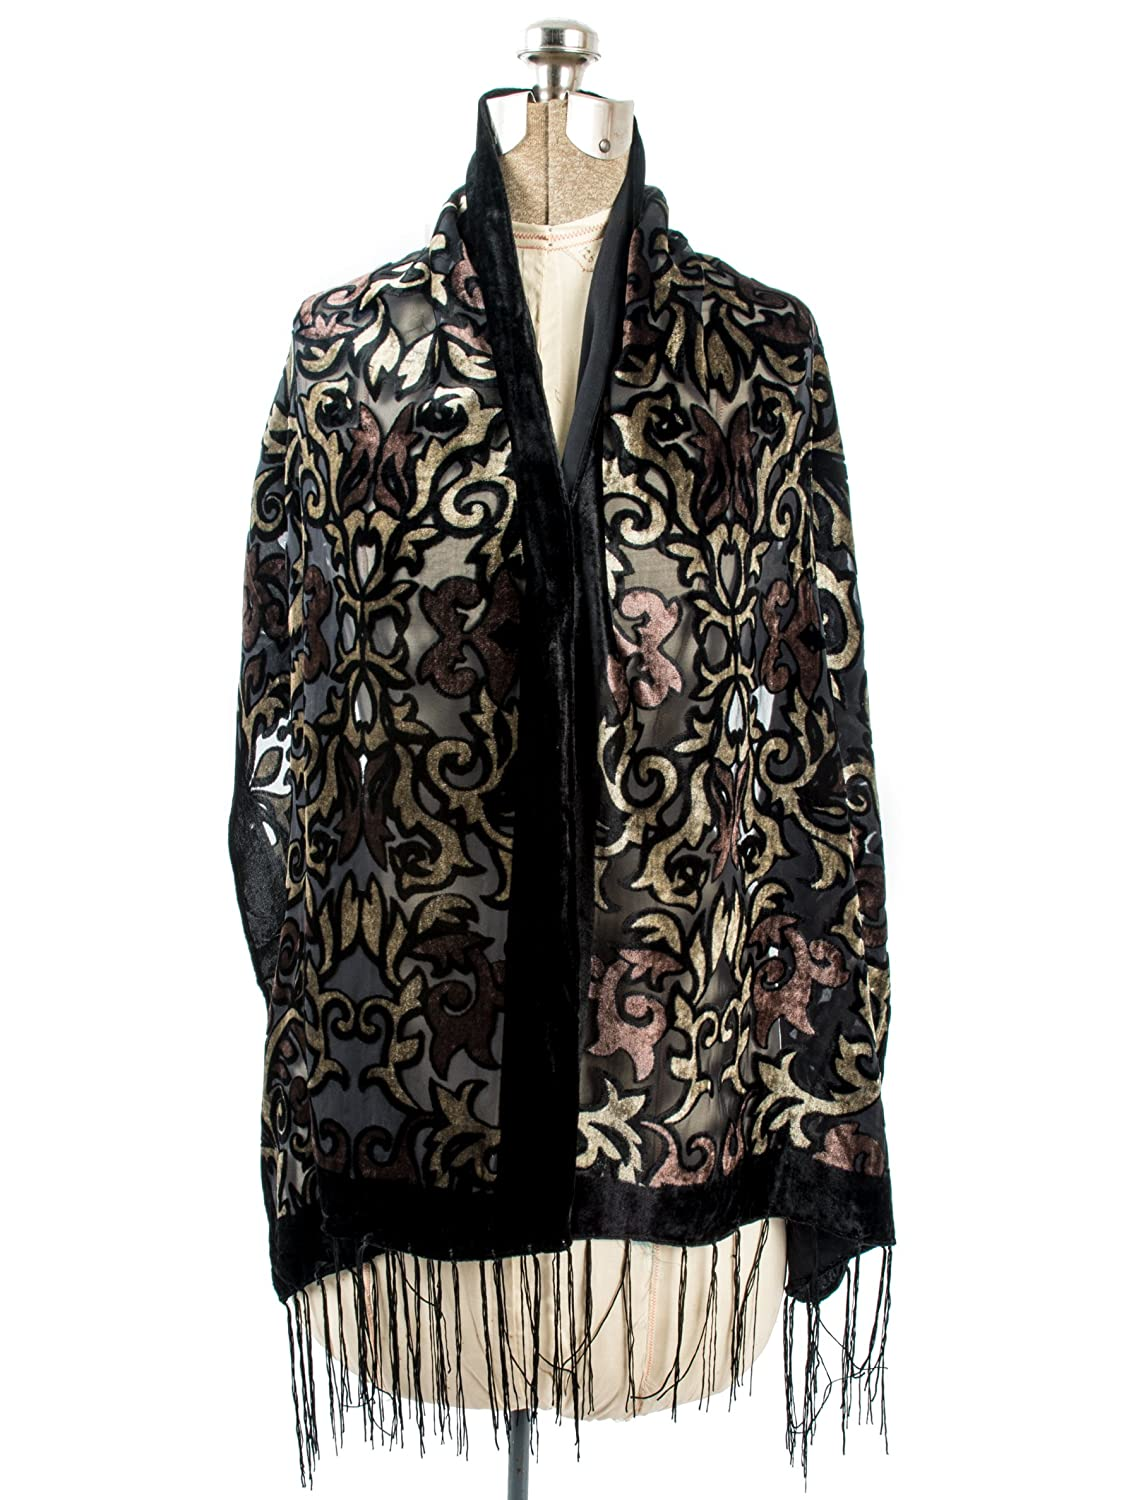 1920s Style Shawls, Wraps, Scarves Bohomonde Gia Scarf - Silk Brocade Print Velvet Burnout Scarf with Fringe Ends $17.95 AT vintagedancer.com